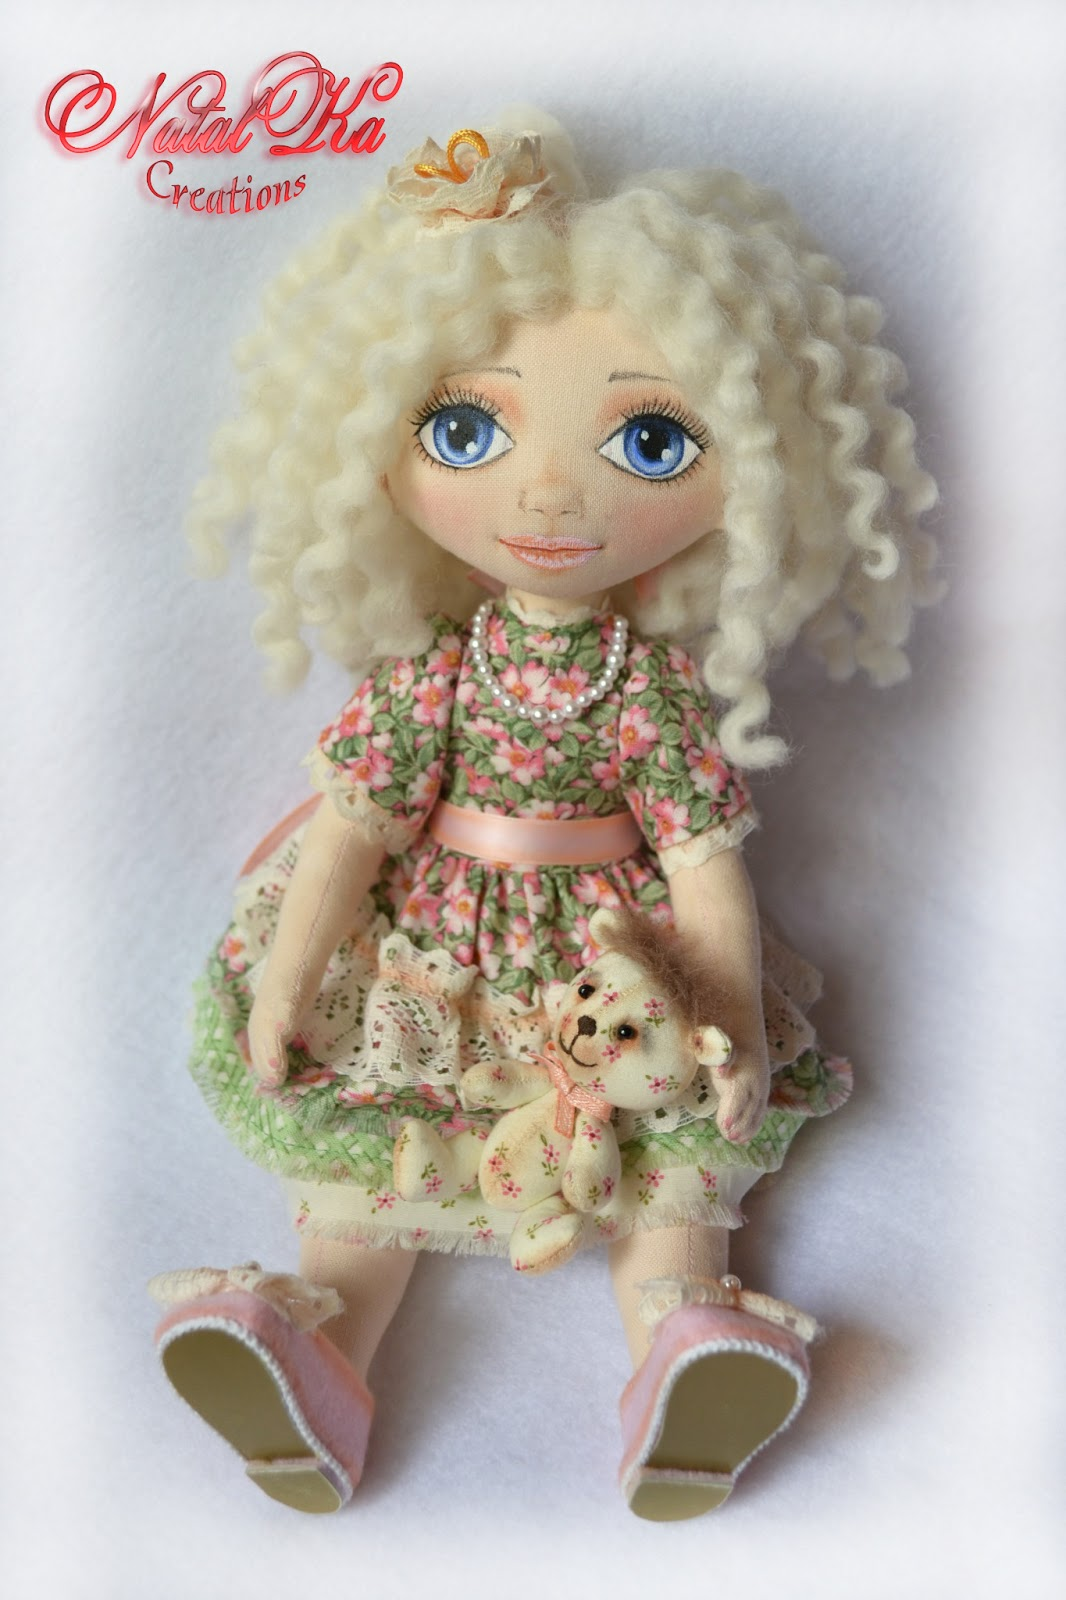 Авторская текстильная кукла. Handgemachte Stoffpuppe von NatalKa Creations. Cloth art doll handmade by NatalKa Creations